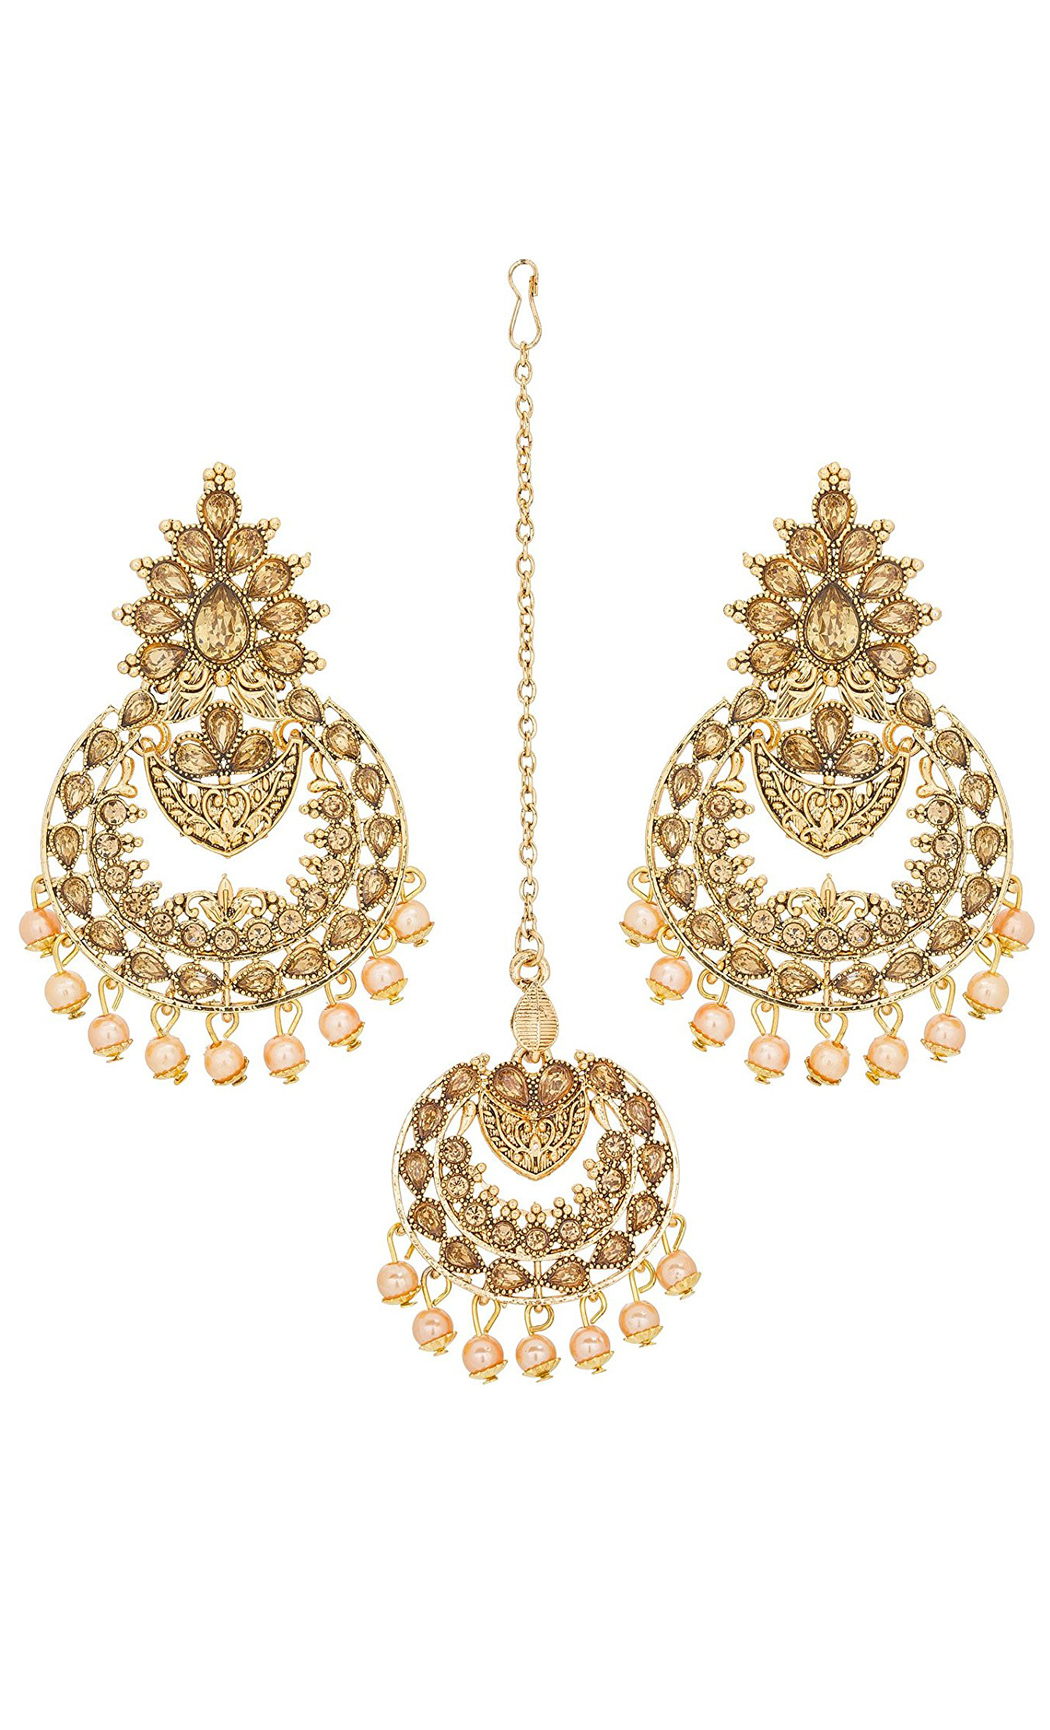 Gold Plated Yellow Stone Chaandbali Earrings and Maang Tikka Set | Indian Bridal Jewellery Sets With Price